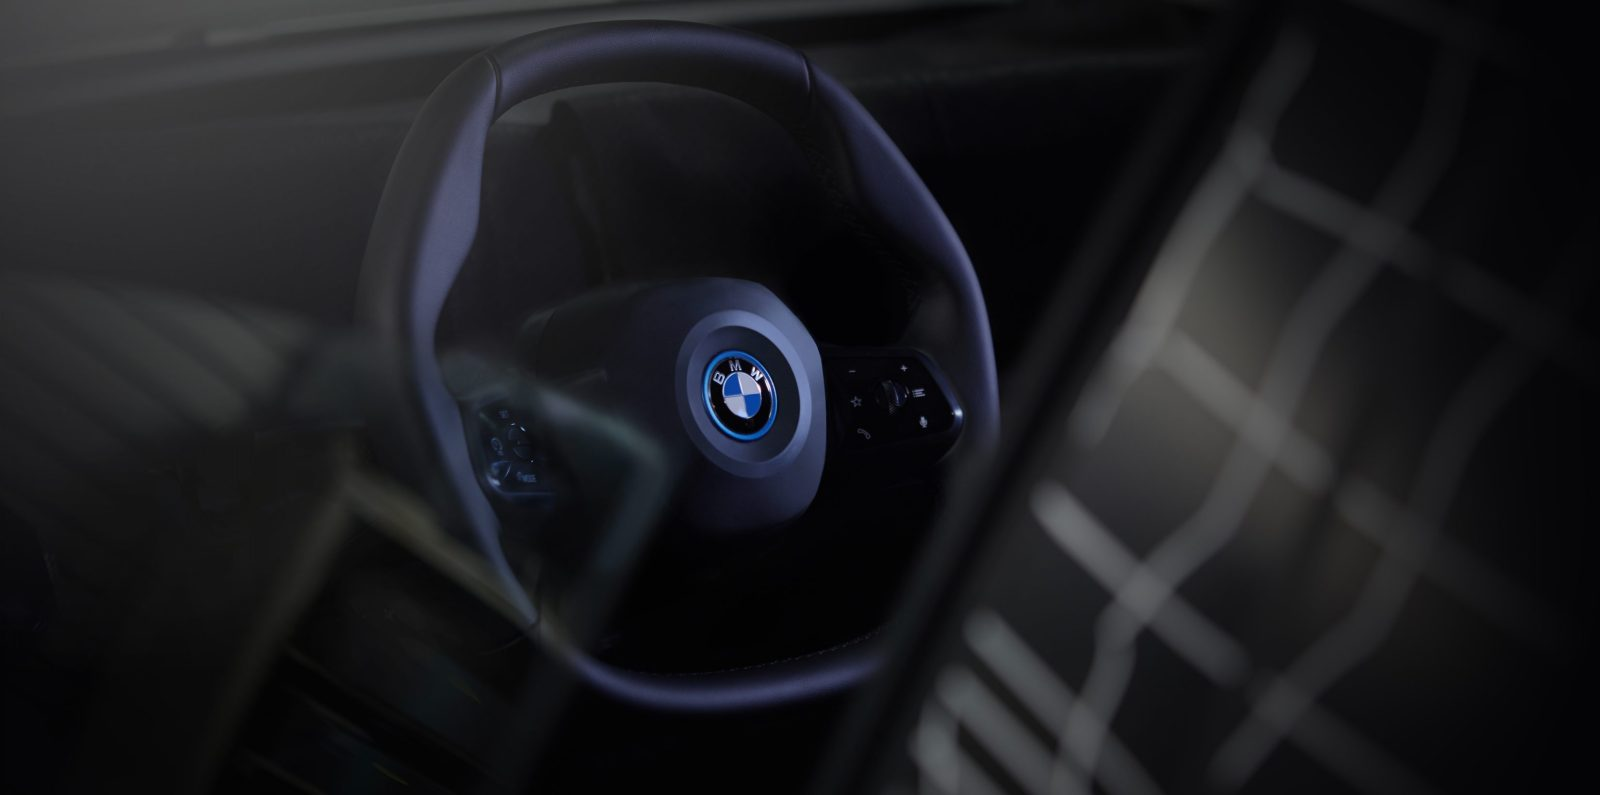 BMW iNEXT polygonal steering wheel made to transition from automated to active driving